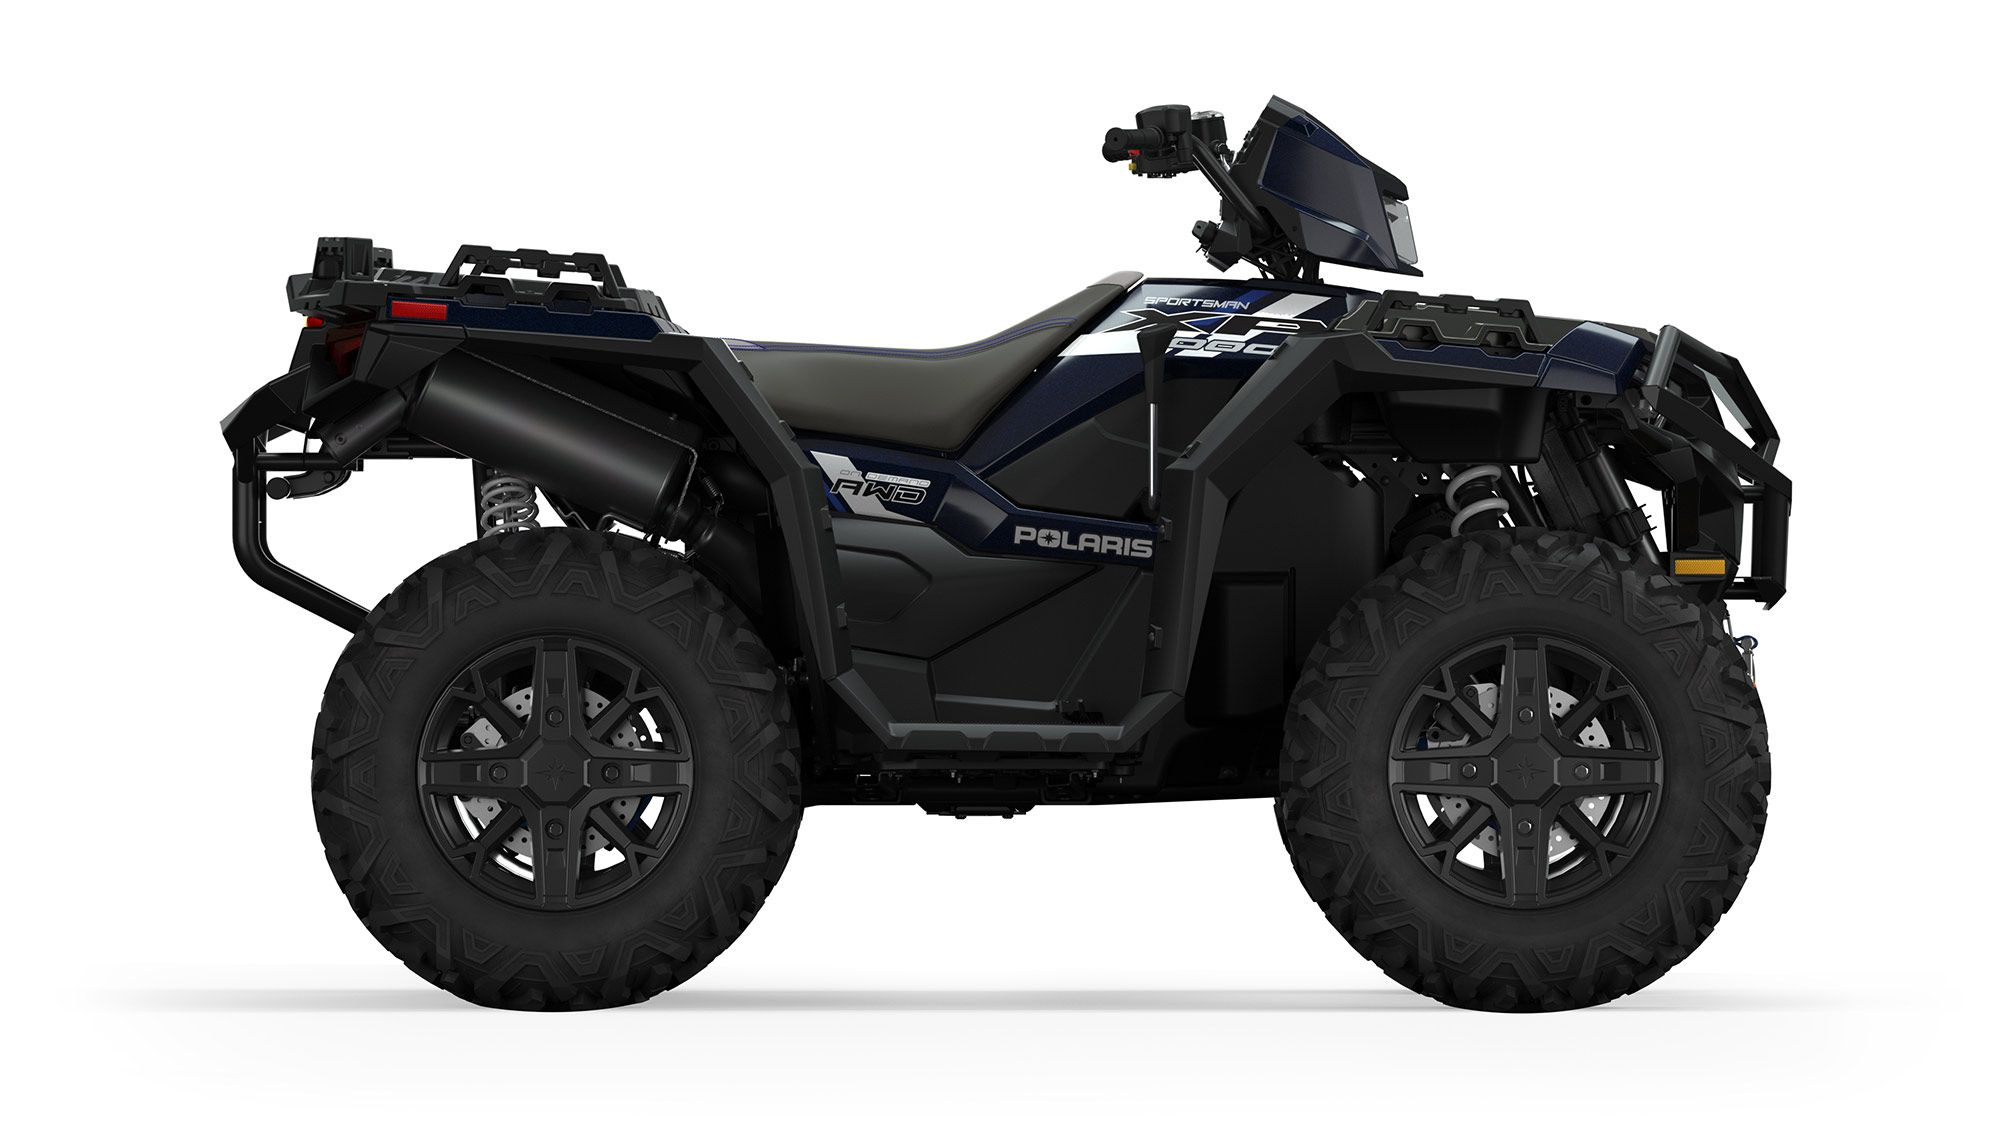 2022 Sportsman XP 1000 Ride Command Edition in Azure Crystal.